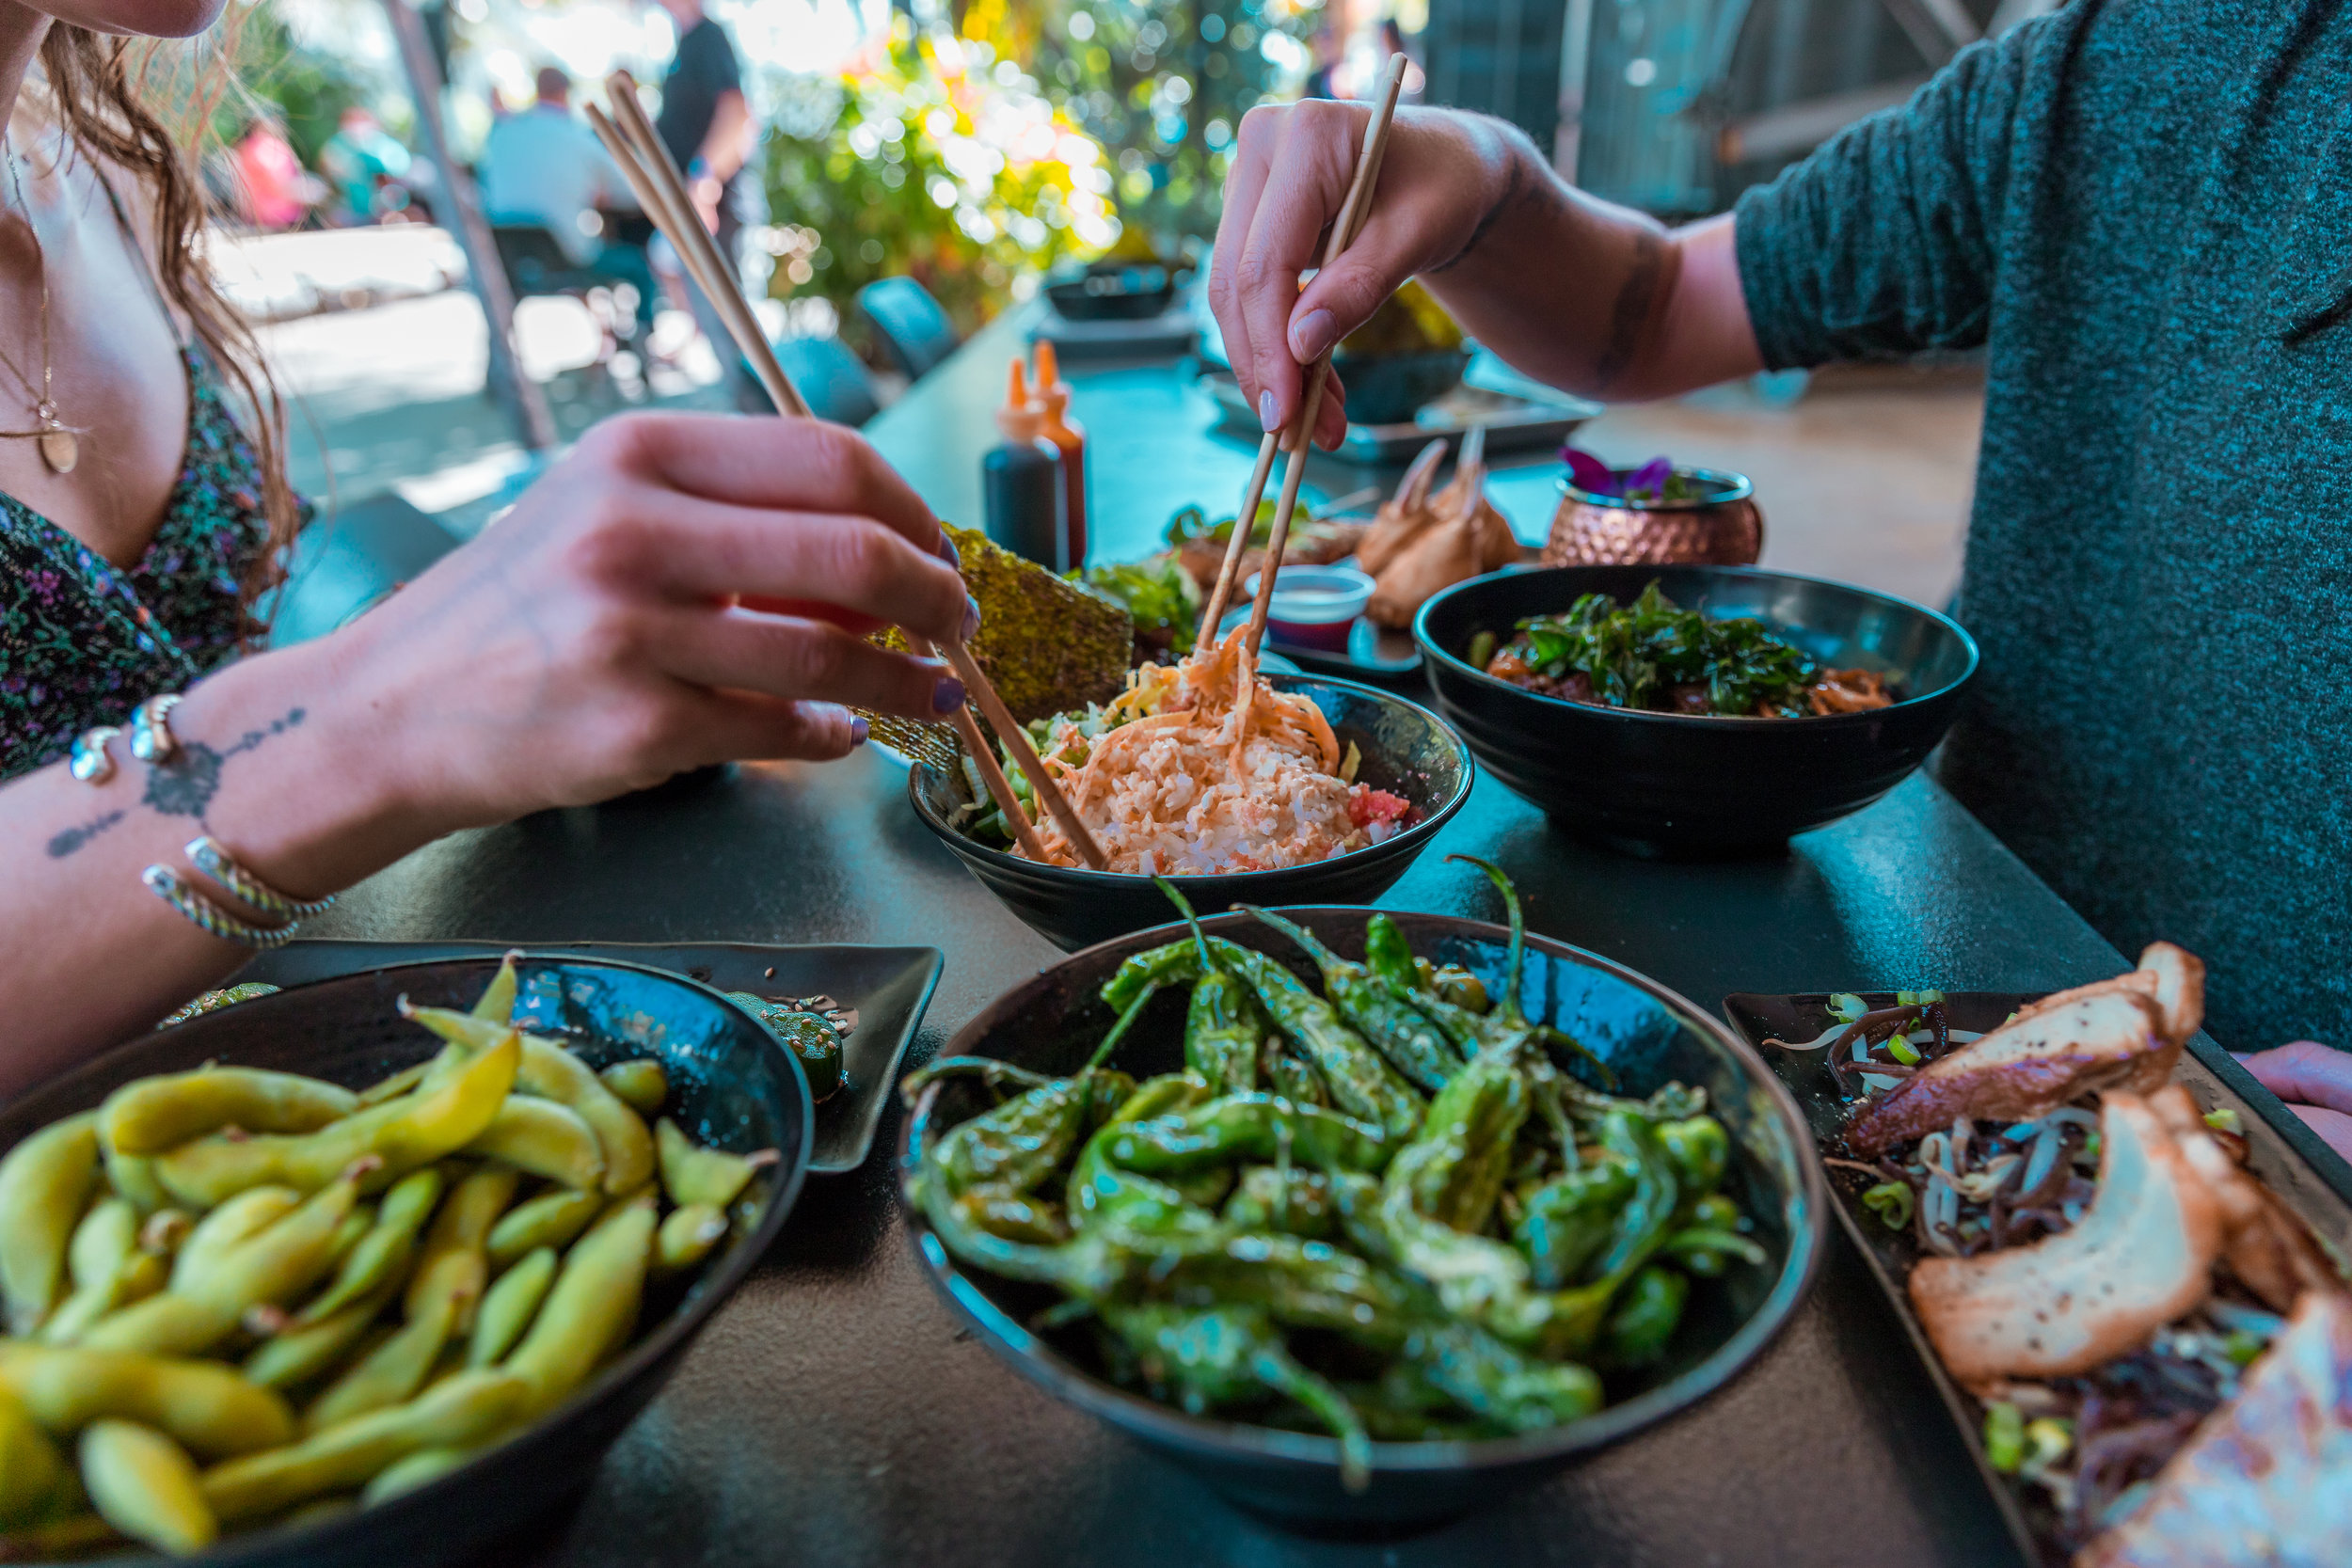 Seven Asian Restaurants to Choose From - 1-800-Lucky is a neighborhood spot offering a wide variety of Asian cuisines, where guests can enjoy many Asian inspired dishes in the heart of Wynwood.